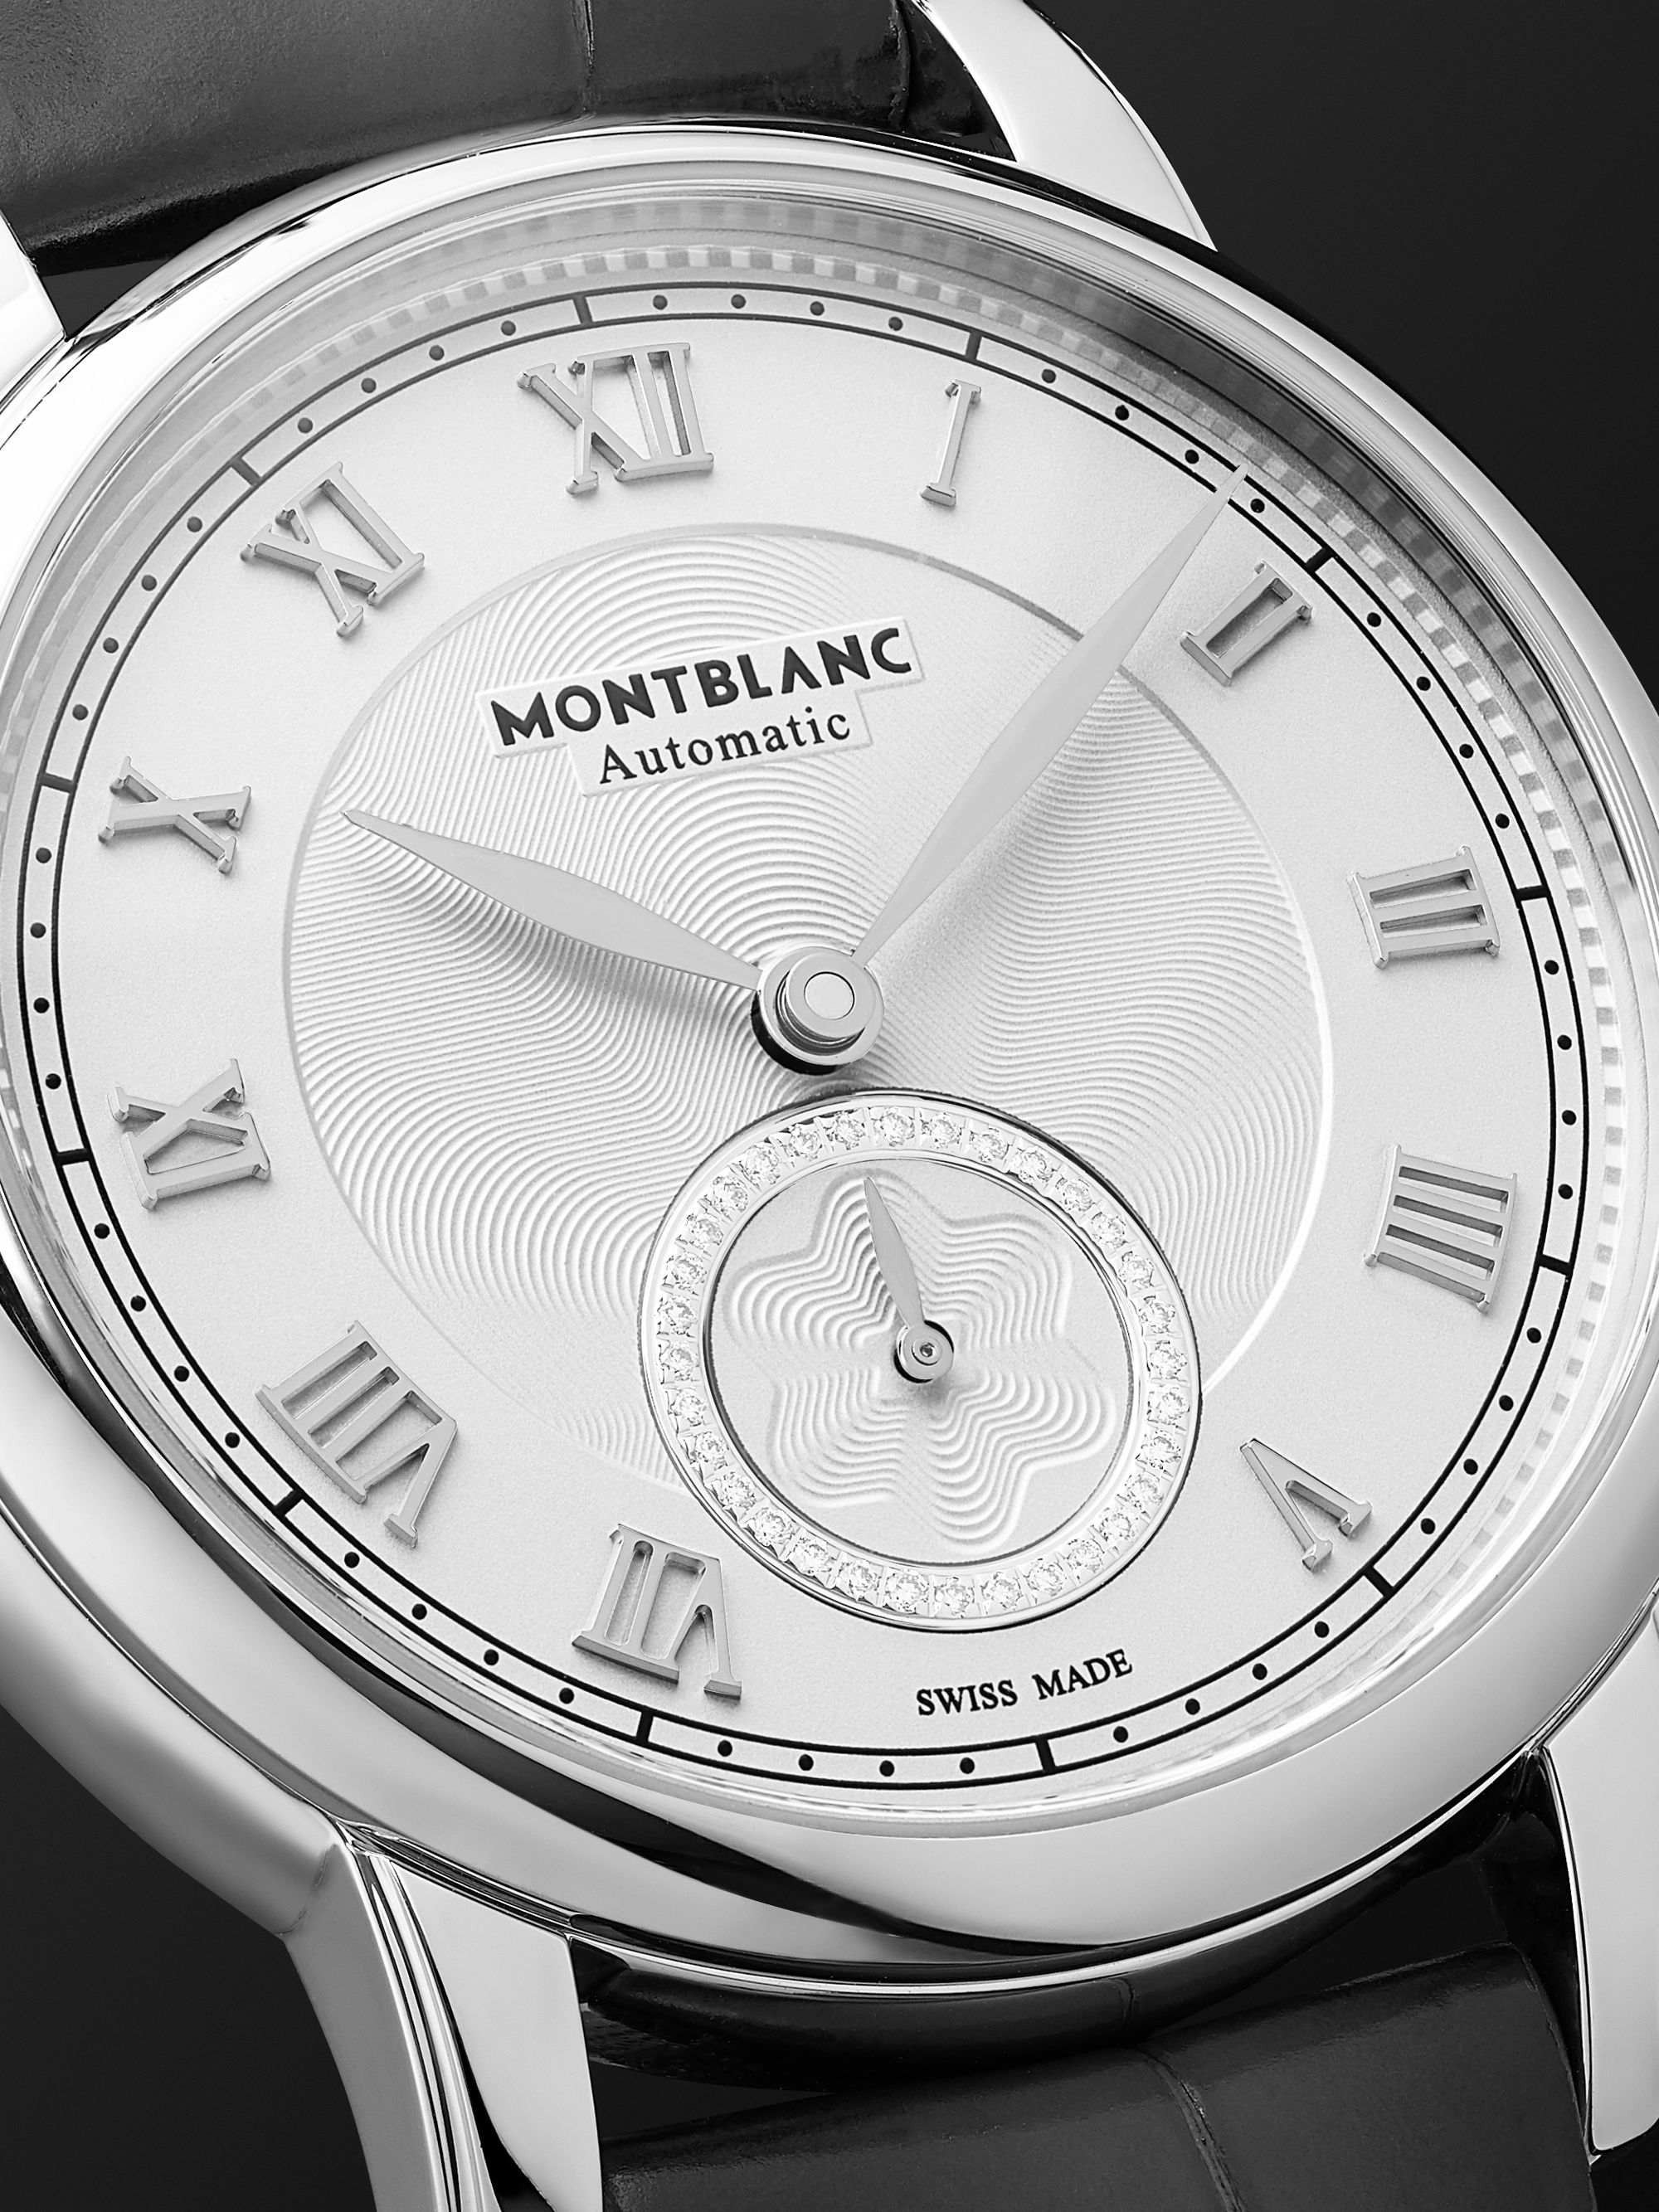 MONTBLANC Star Legacy Automatic 36mm Stainless Steel and Alligator Watch, Ref. No. 126110